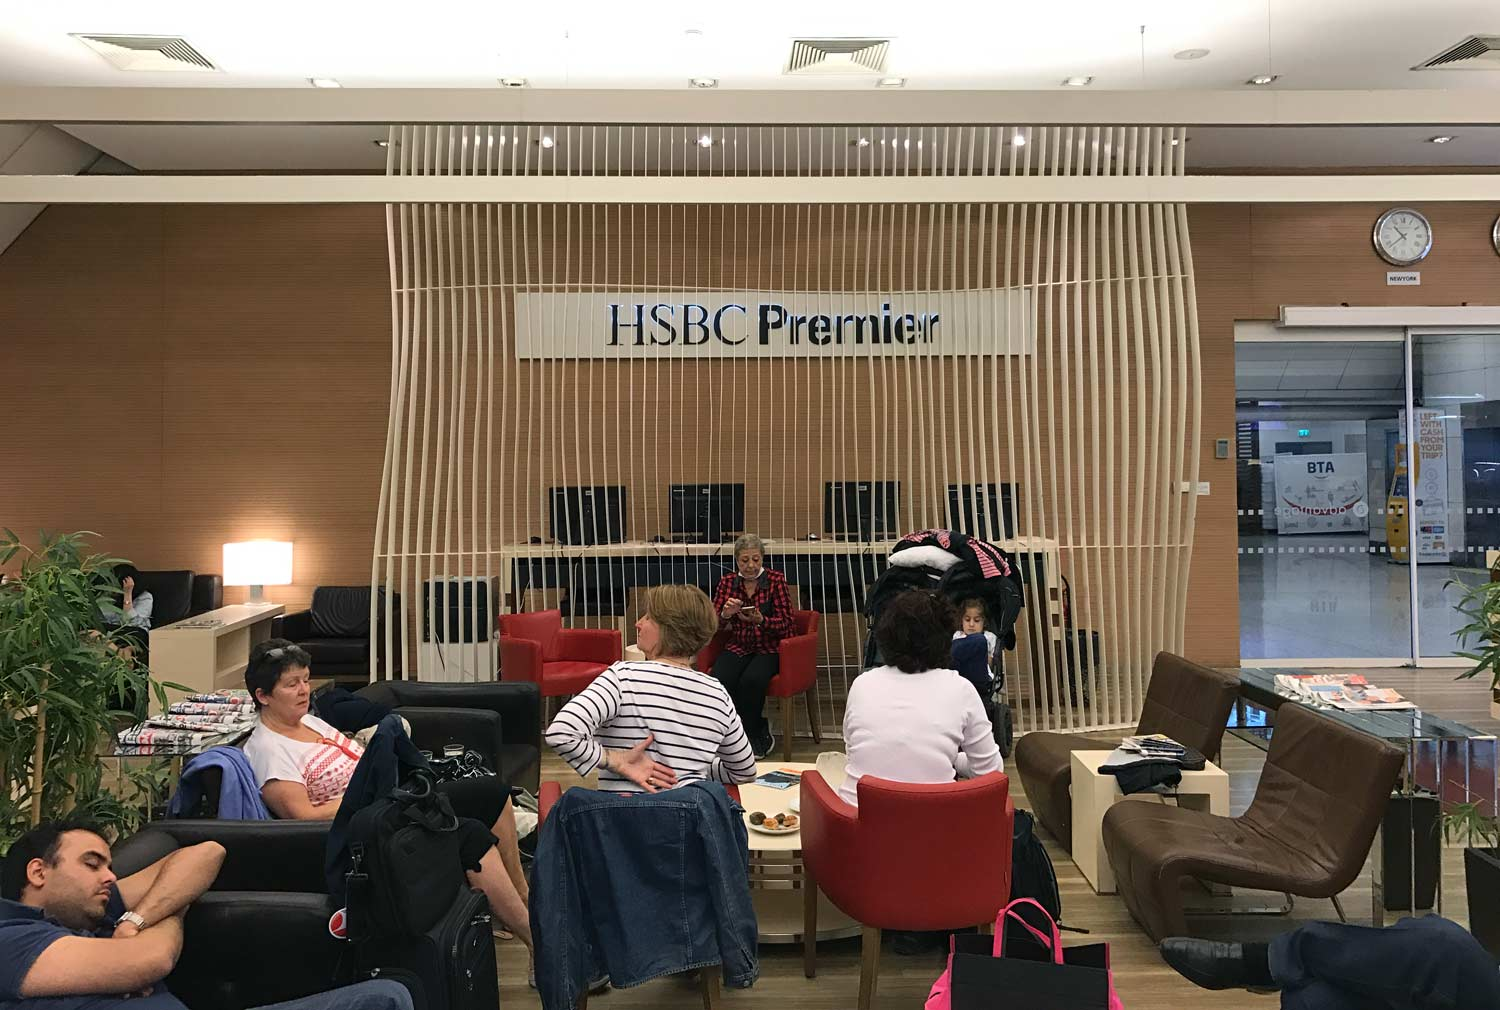 HSBC Premier Lounge Istanbul Review - Priority Pass Lounge at IST